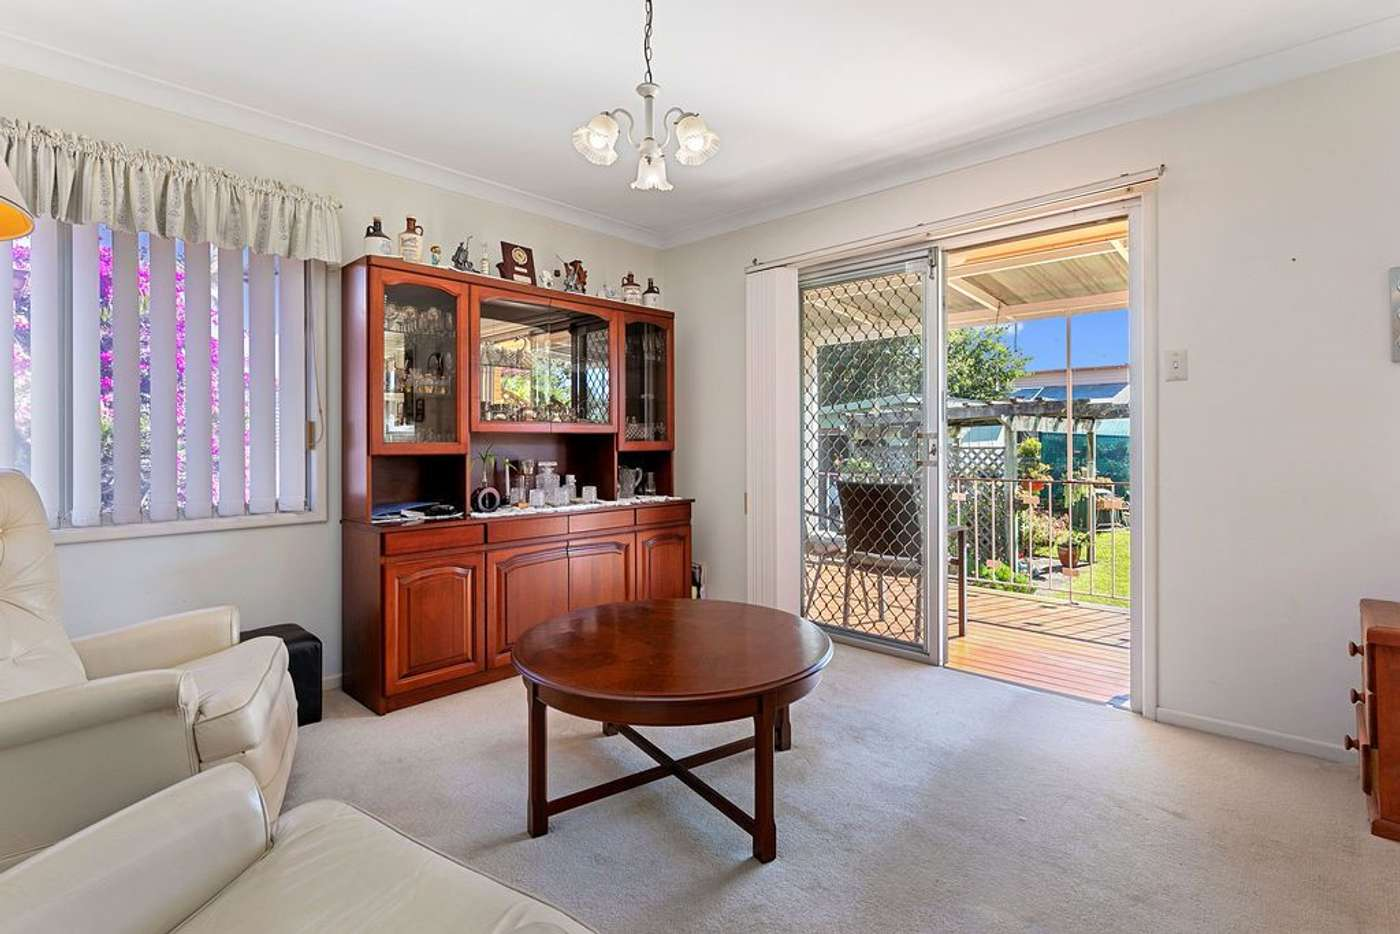 Sixth view of Homely house listing, 19 Tamaree Avenue, Wynnum QLD 4178